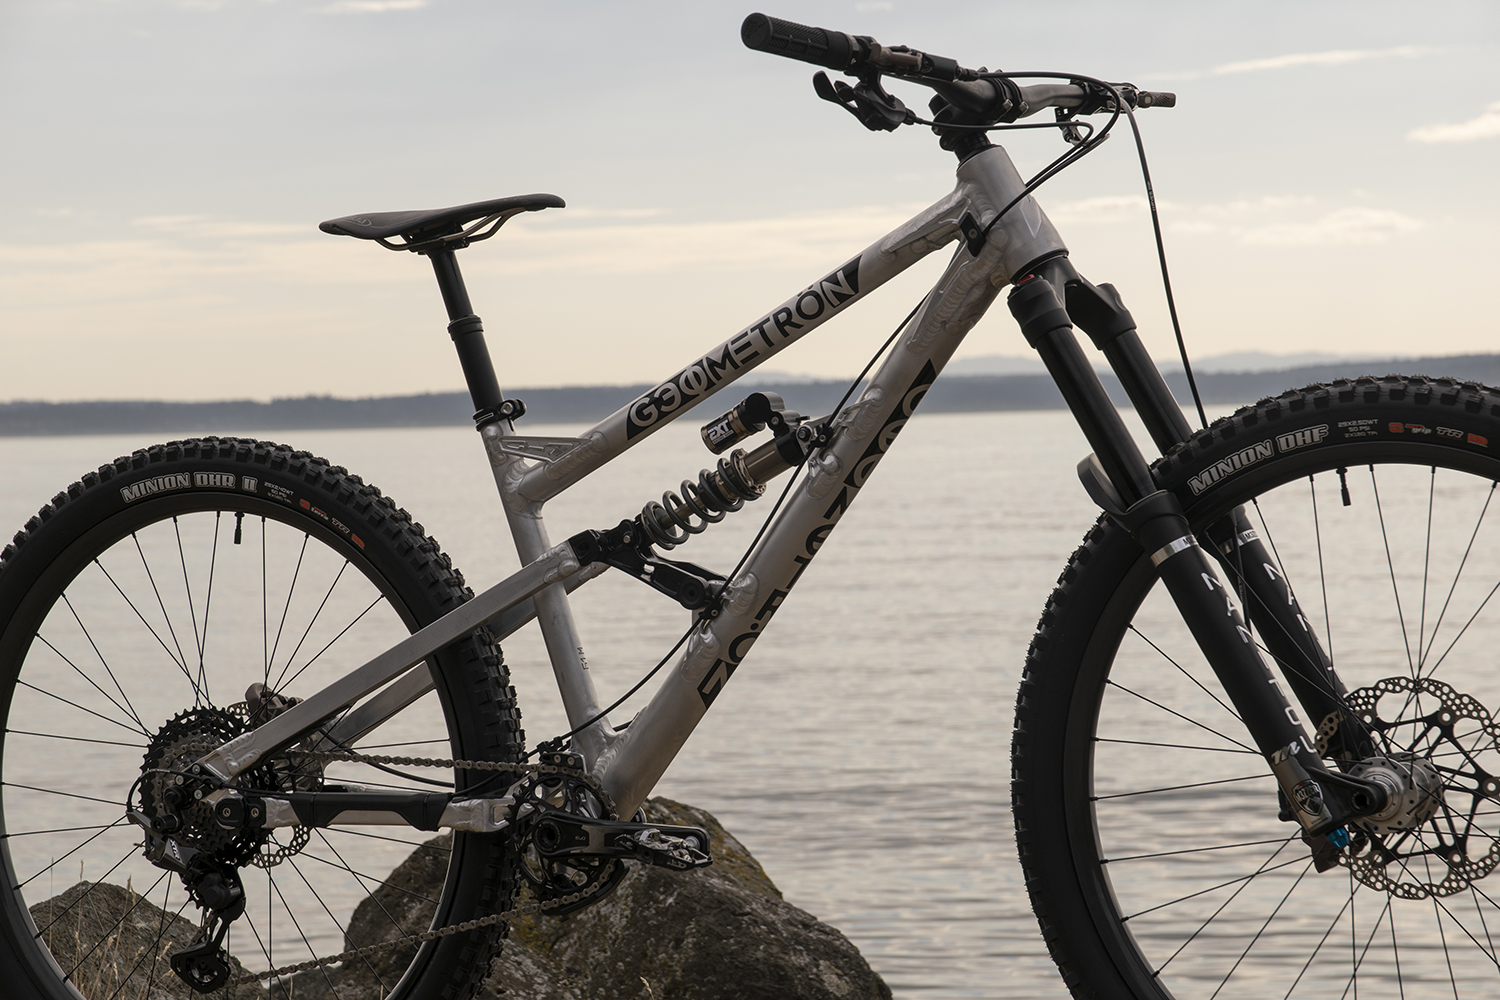 David Golay reviews the Nicolai G1 for Blister